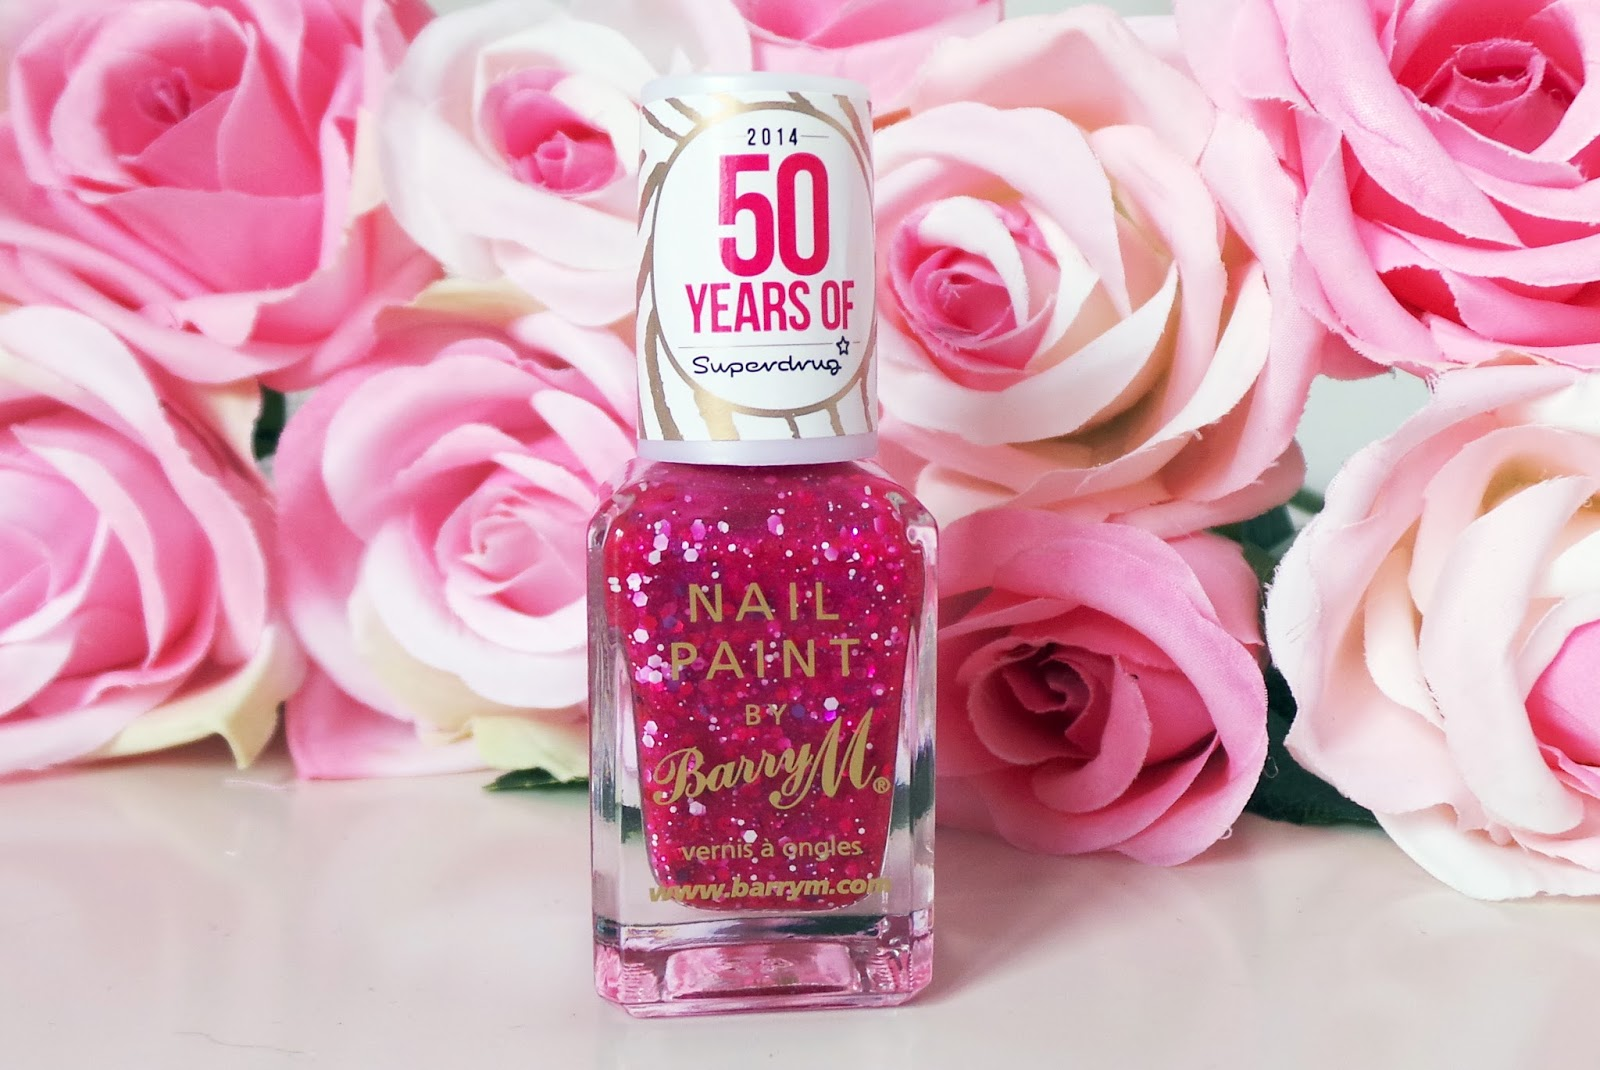 Barry M Pink Glitter Superdrug 50th Birthday Nail Polish, barry m, barry m limited edition, superdrug 50th birthday, superdrug, barry m at superdrug, nail blog, nail blogger, uk nail blog, pretty pink glitter, pink glitter nail polish, barry m glitter nails, beauty blog, bbloggers, uk beauty blog